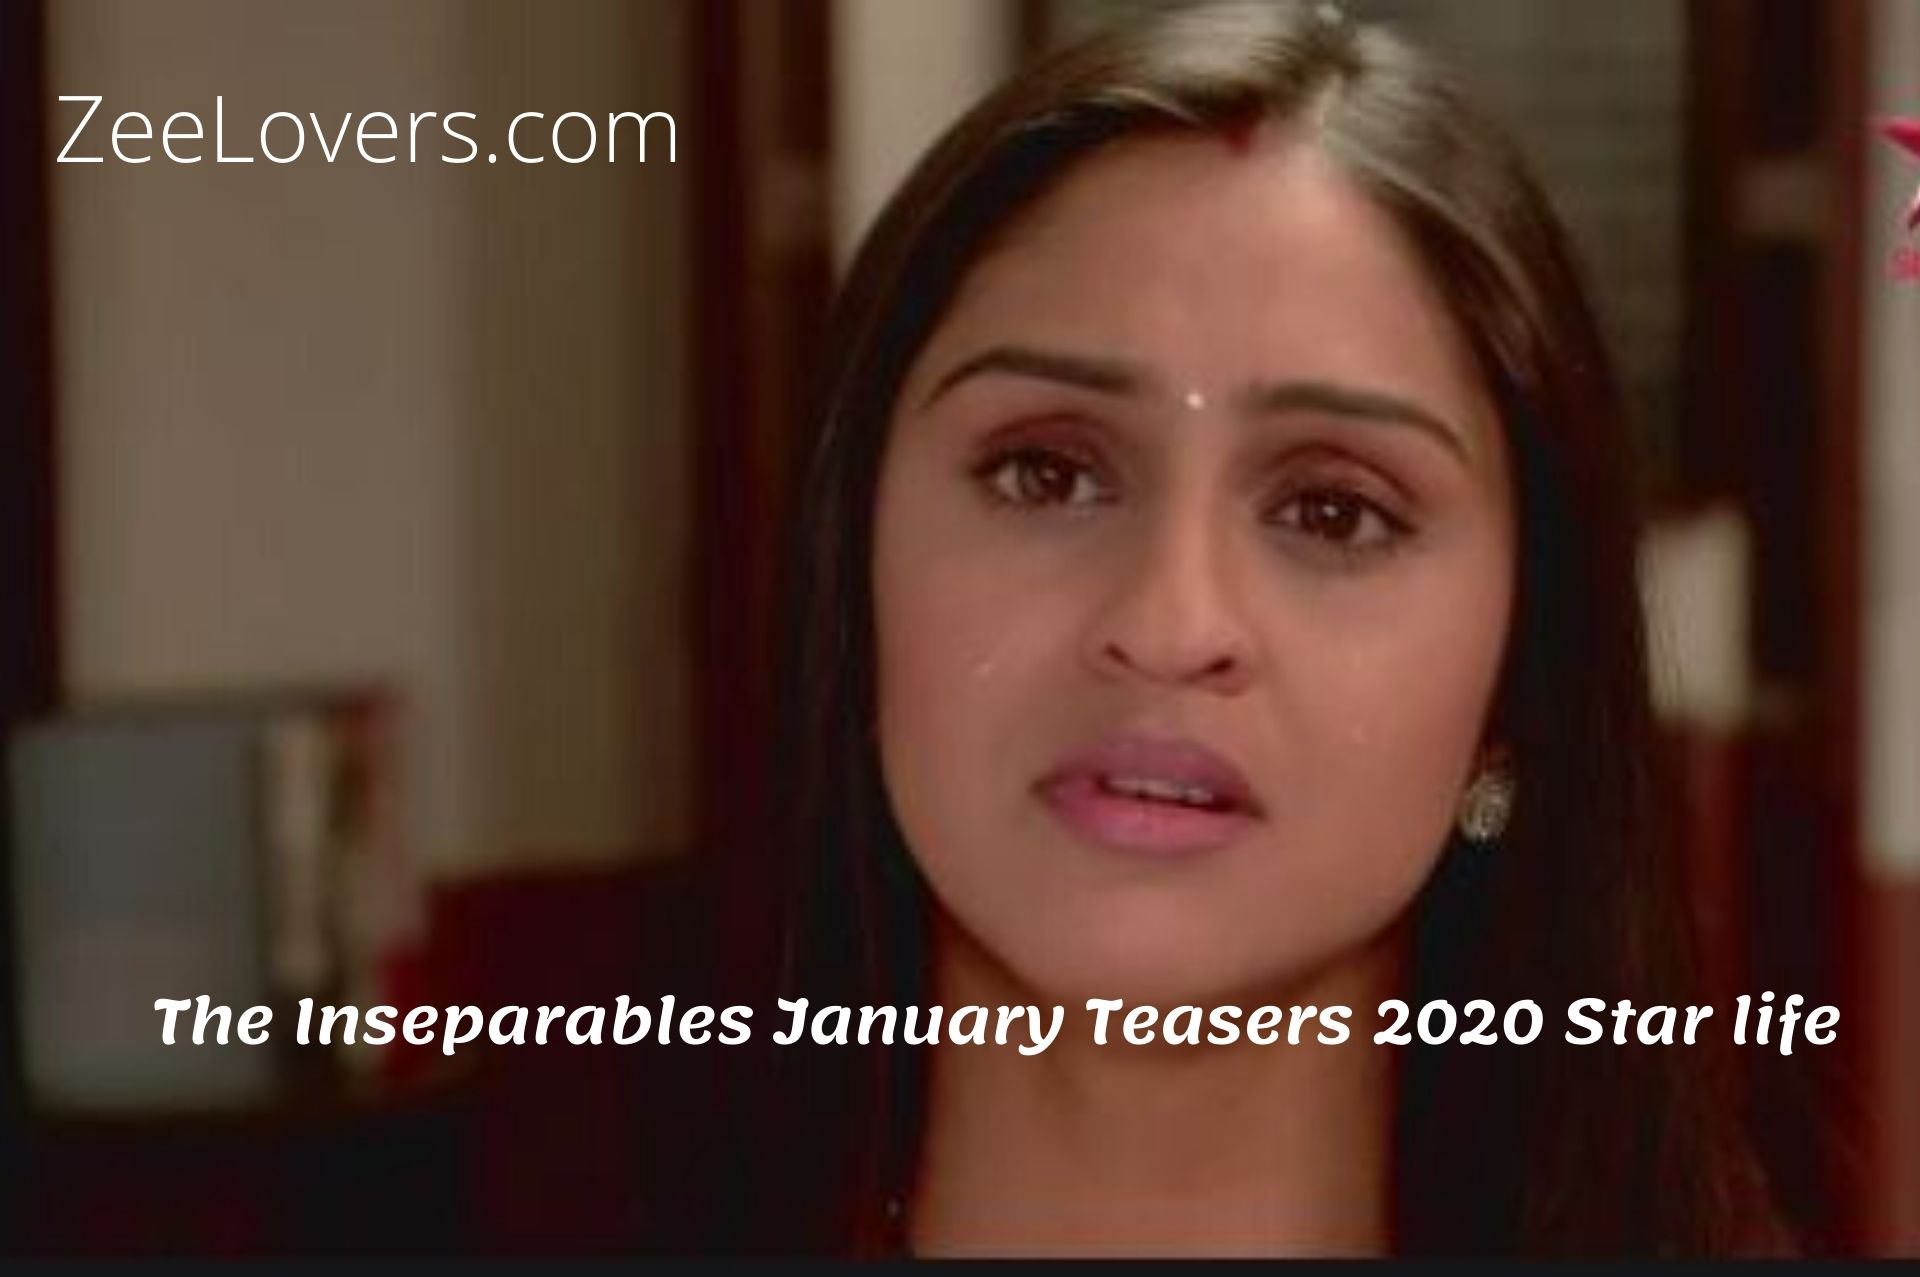 The Inseparables January Teasers 2020